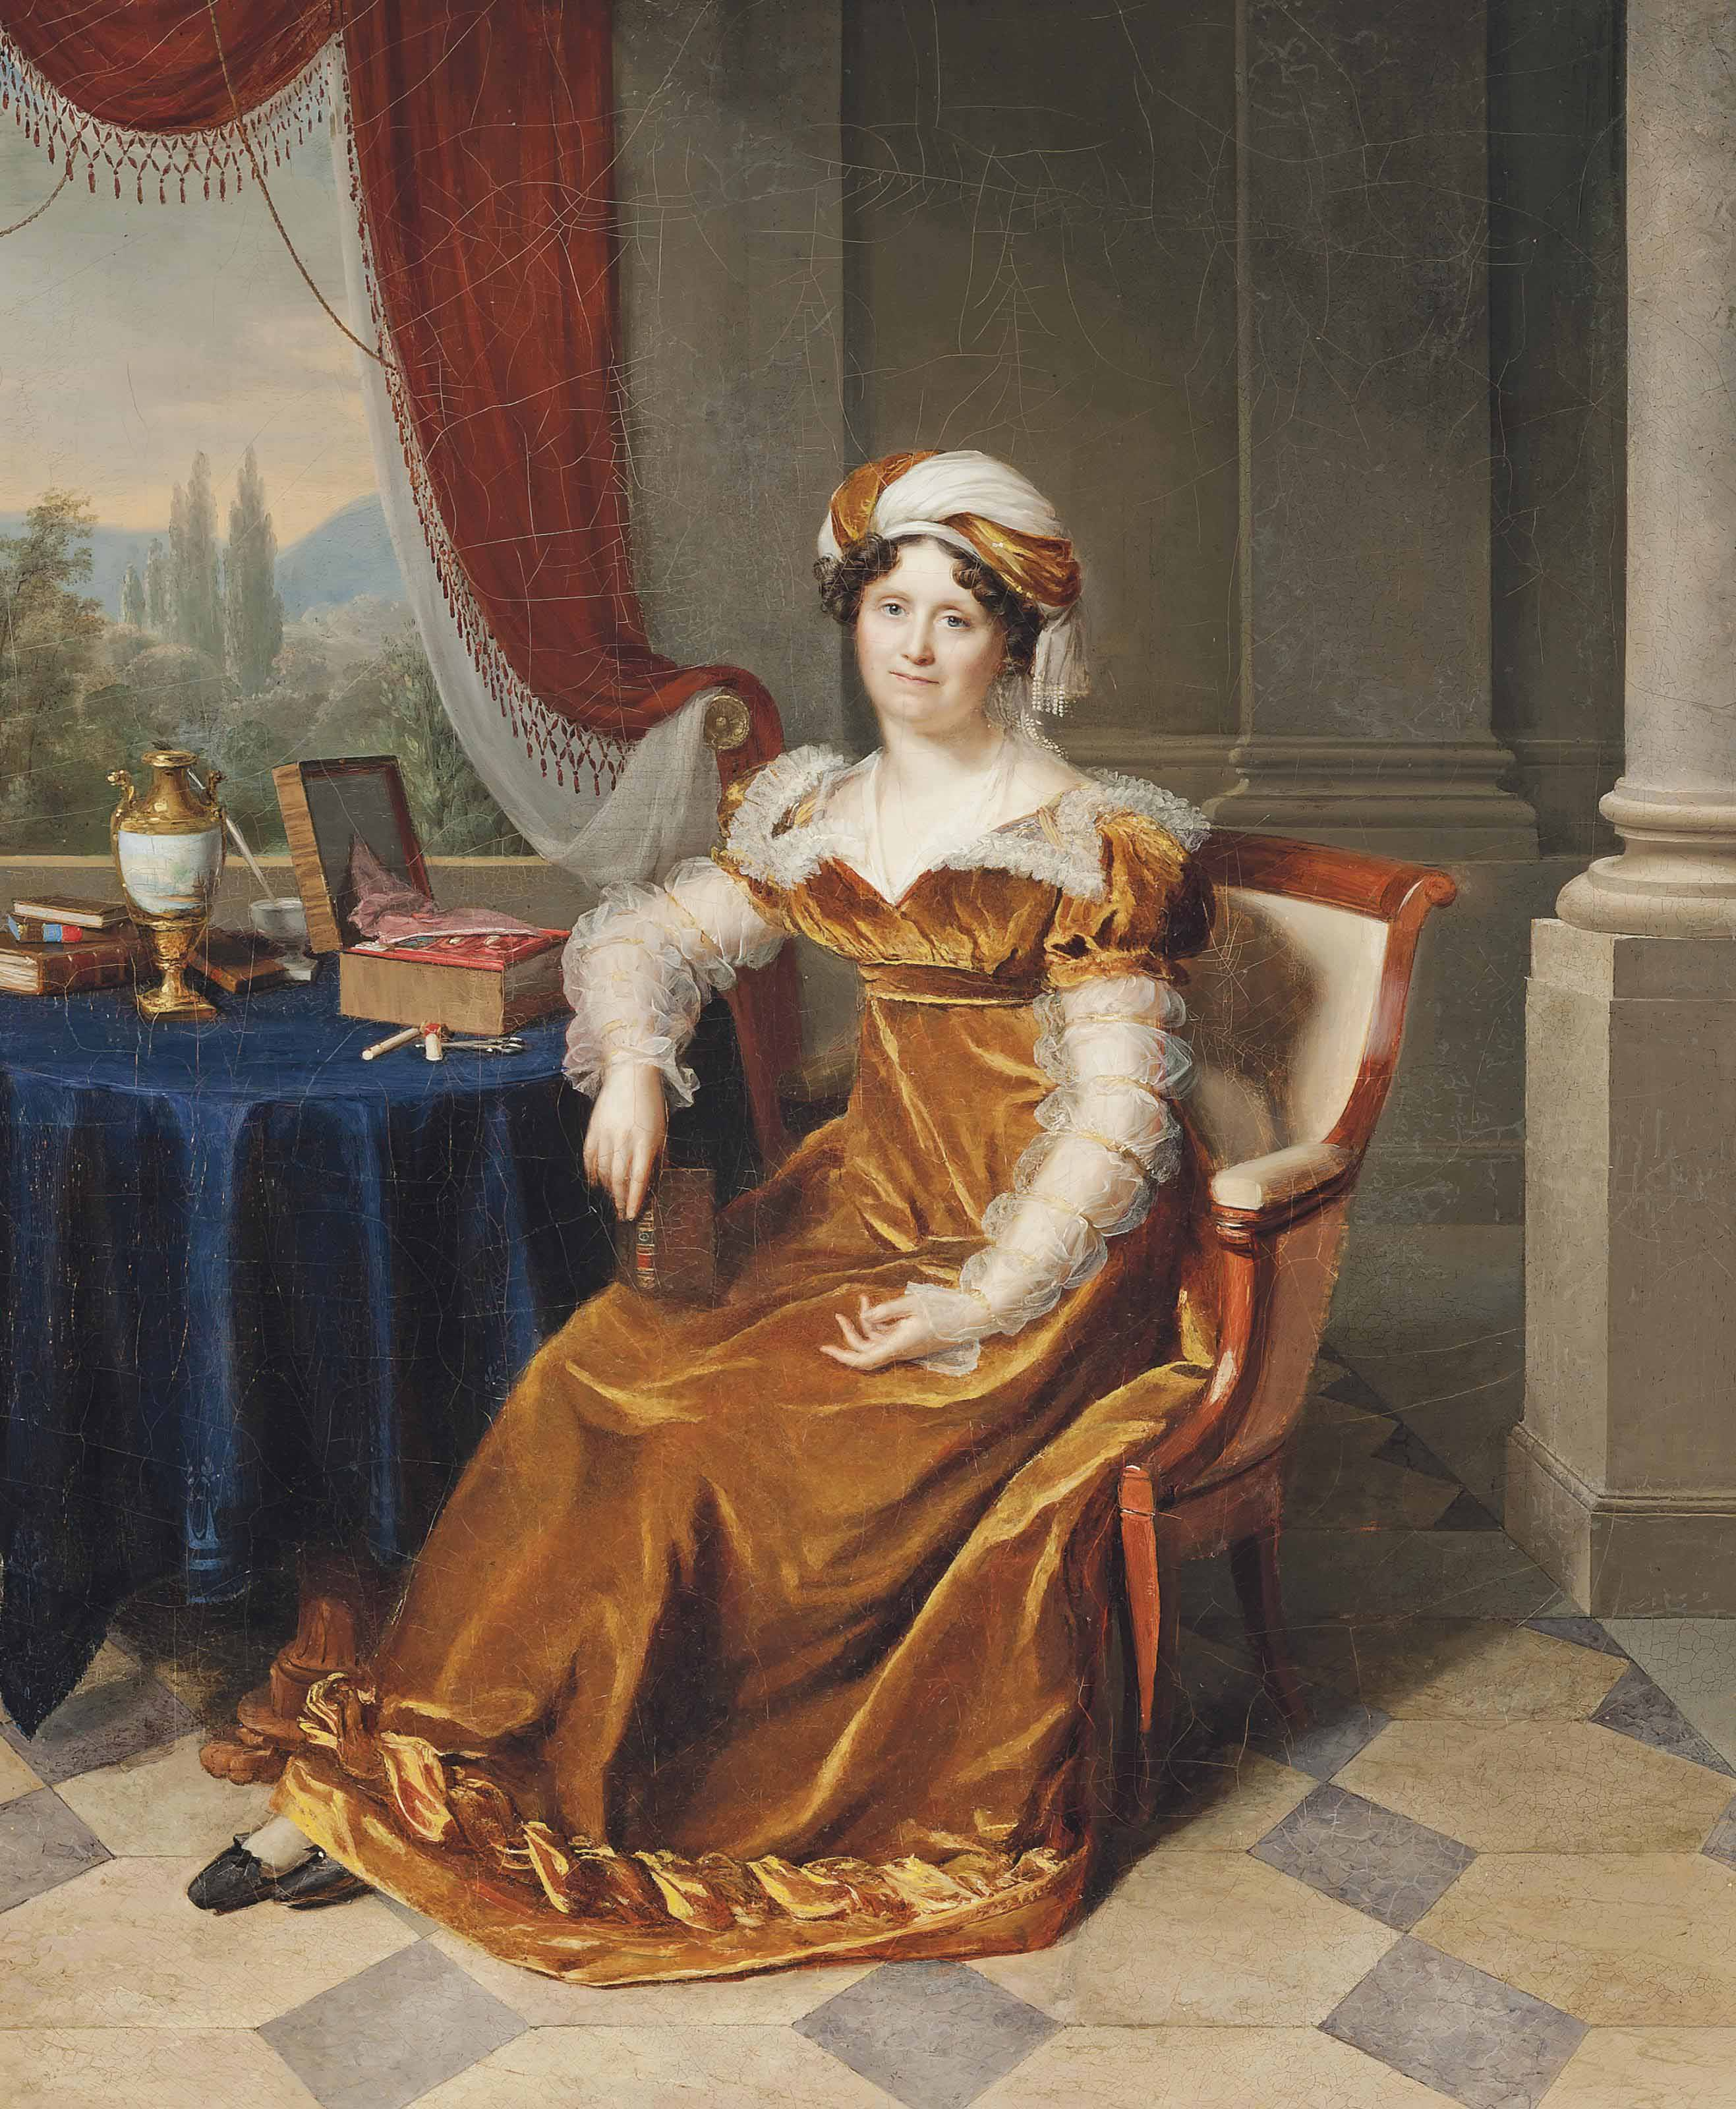 Portrait of a lady, traditionally identified as Julie Masbou, neé Garrigues, full-length, in a golden dress with a turban, in an elegant interior, a landscape beyond